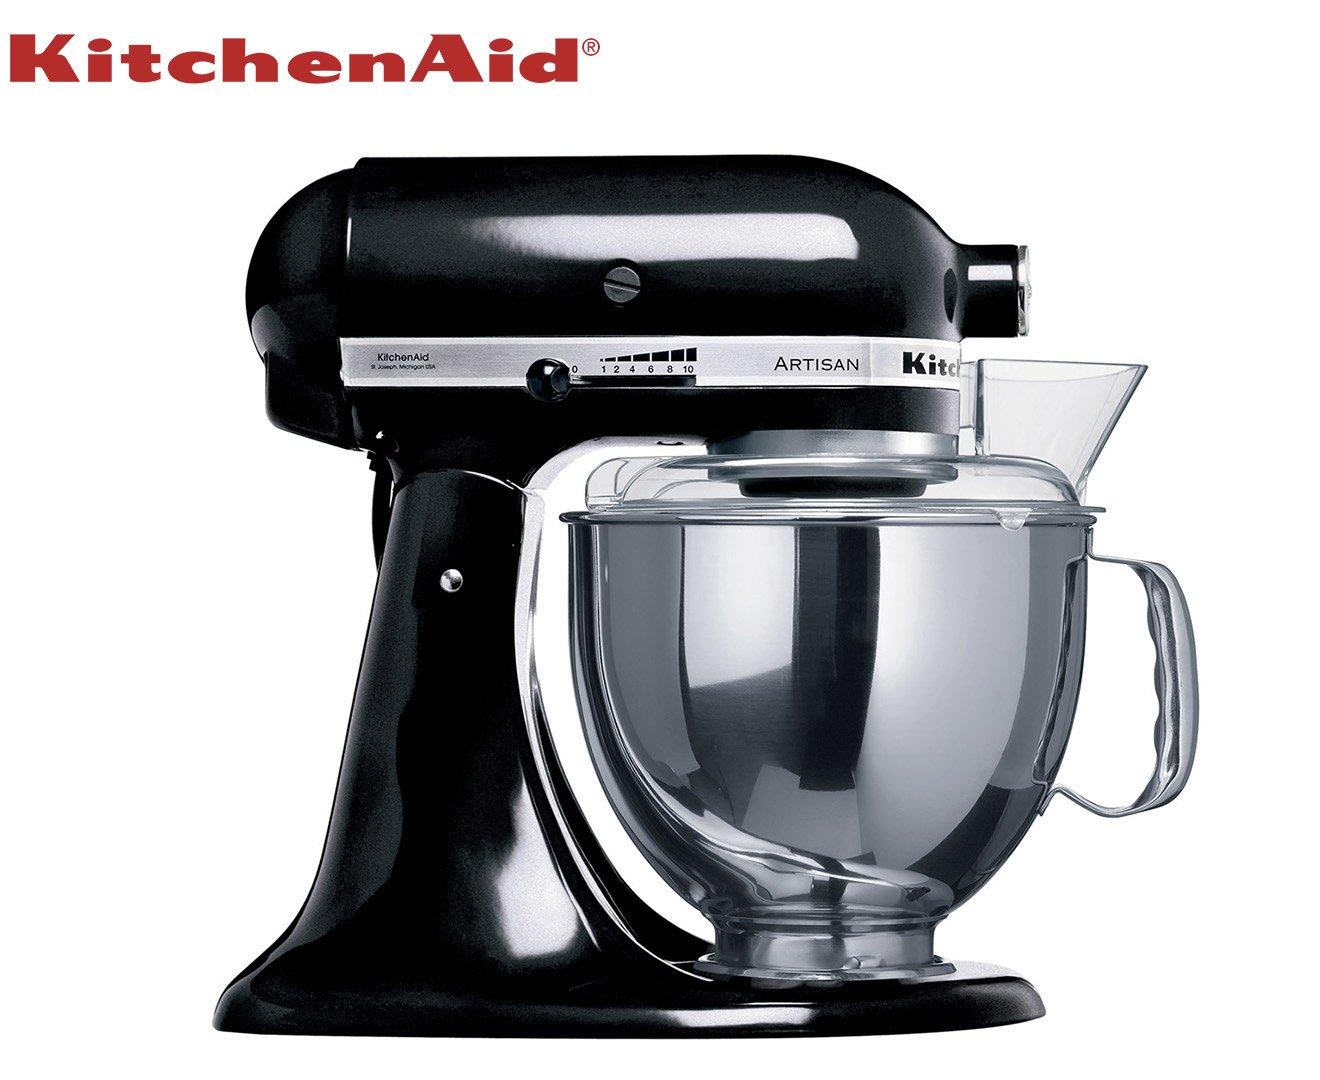 kenwood artisan stand mixer review